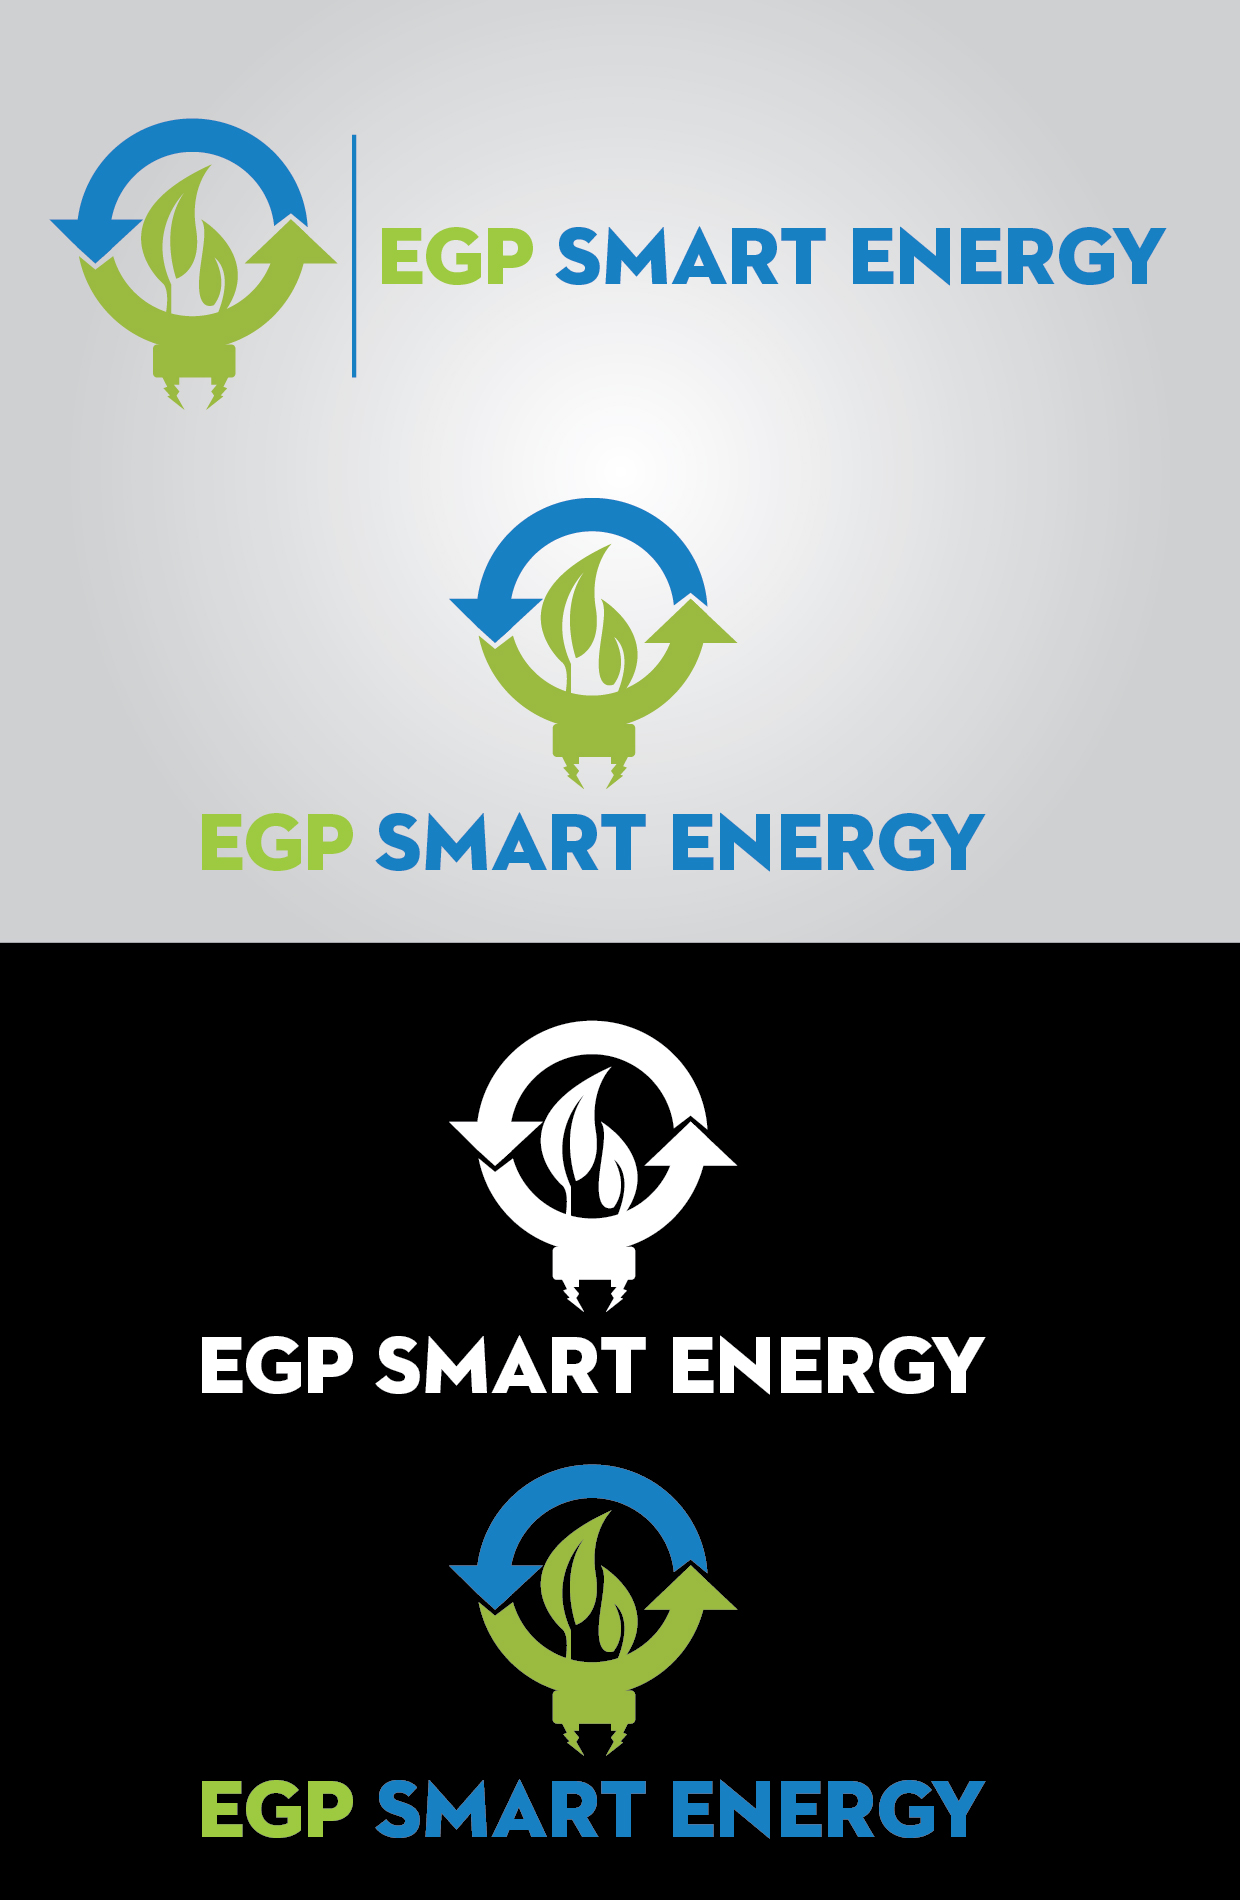 Logo Design by mediaproductionart - Entry No. 40 in the Logo Design Contest Captivating Logo Design for EGP Smart Energy.